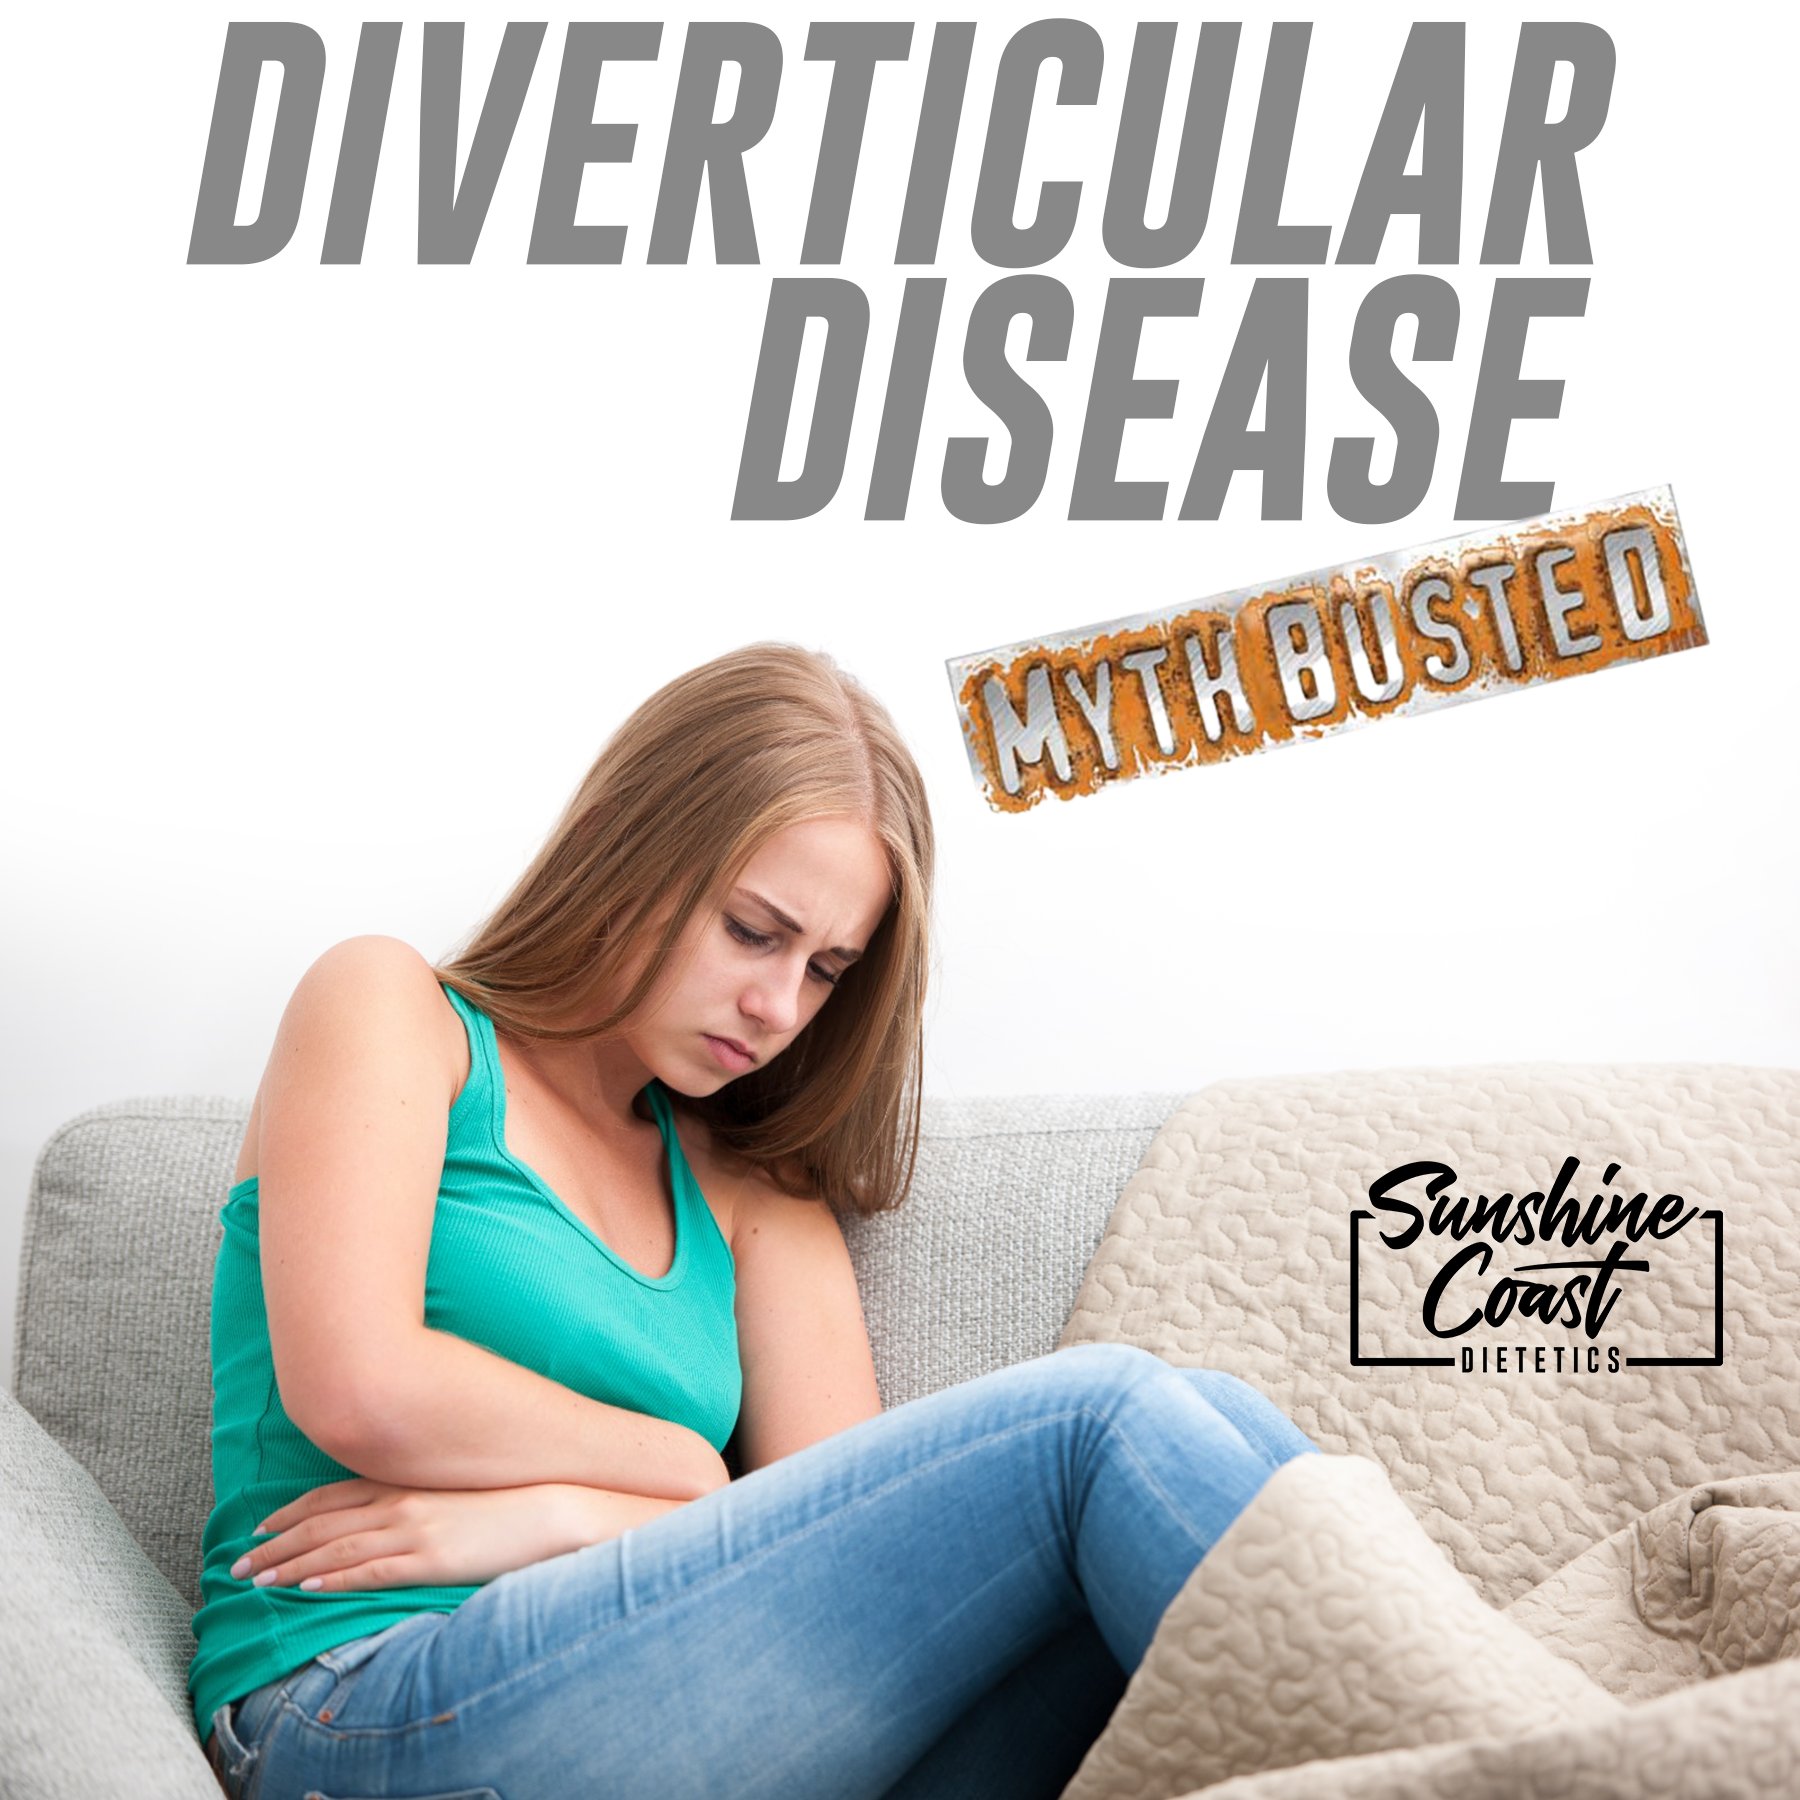 Diverticular Disease Myths Busted